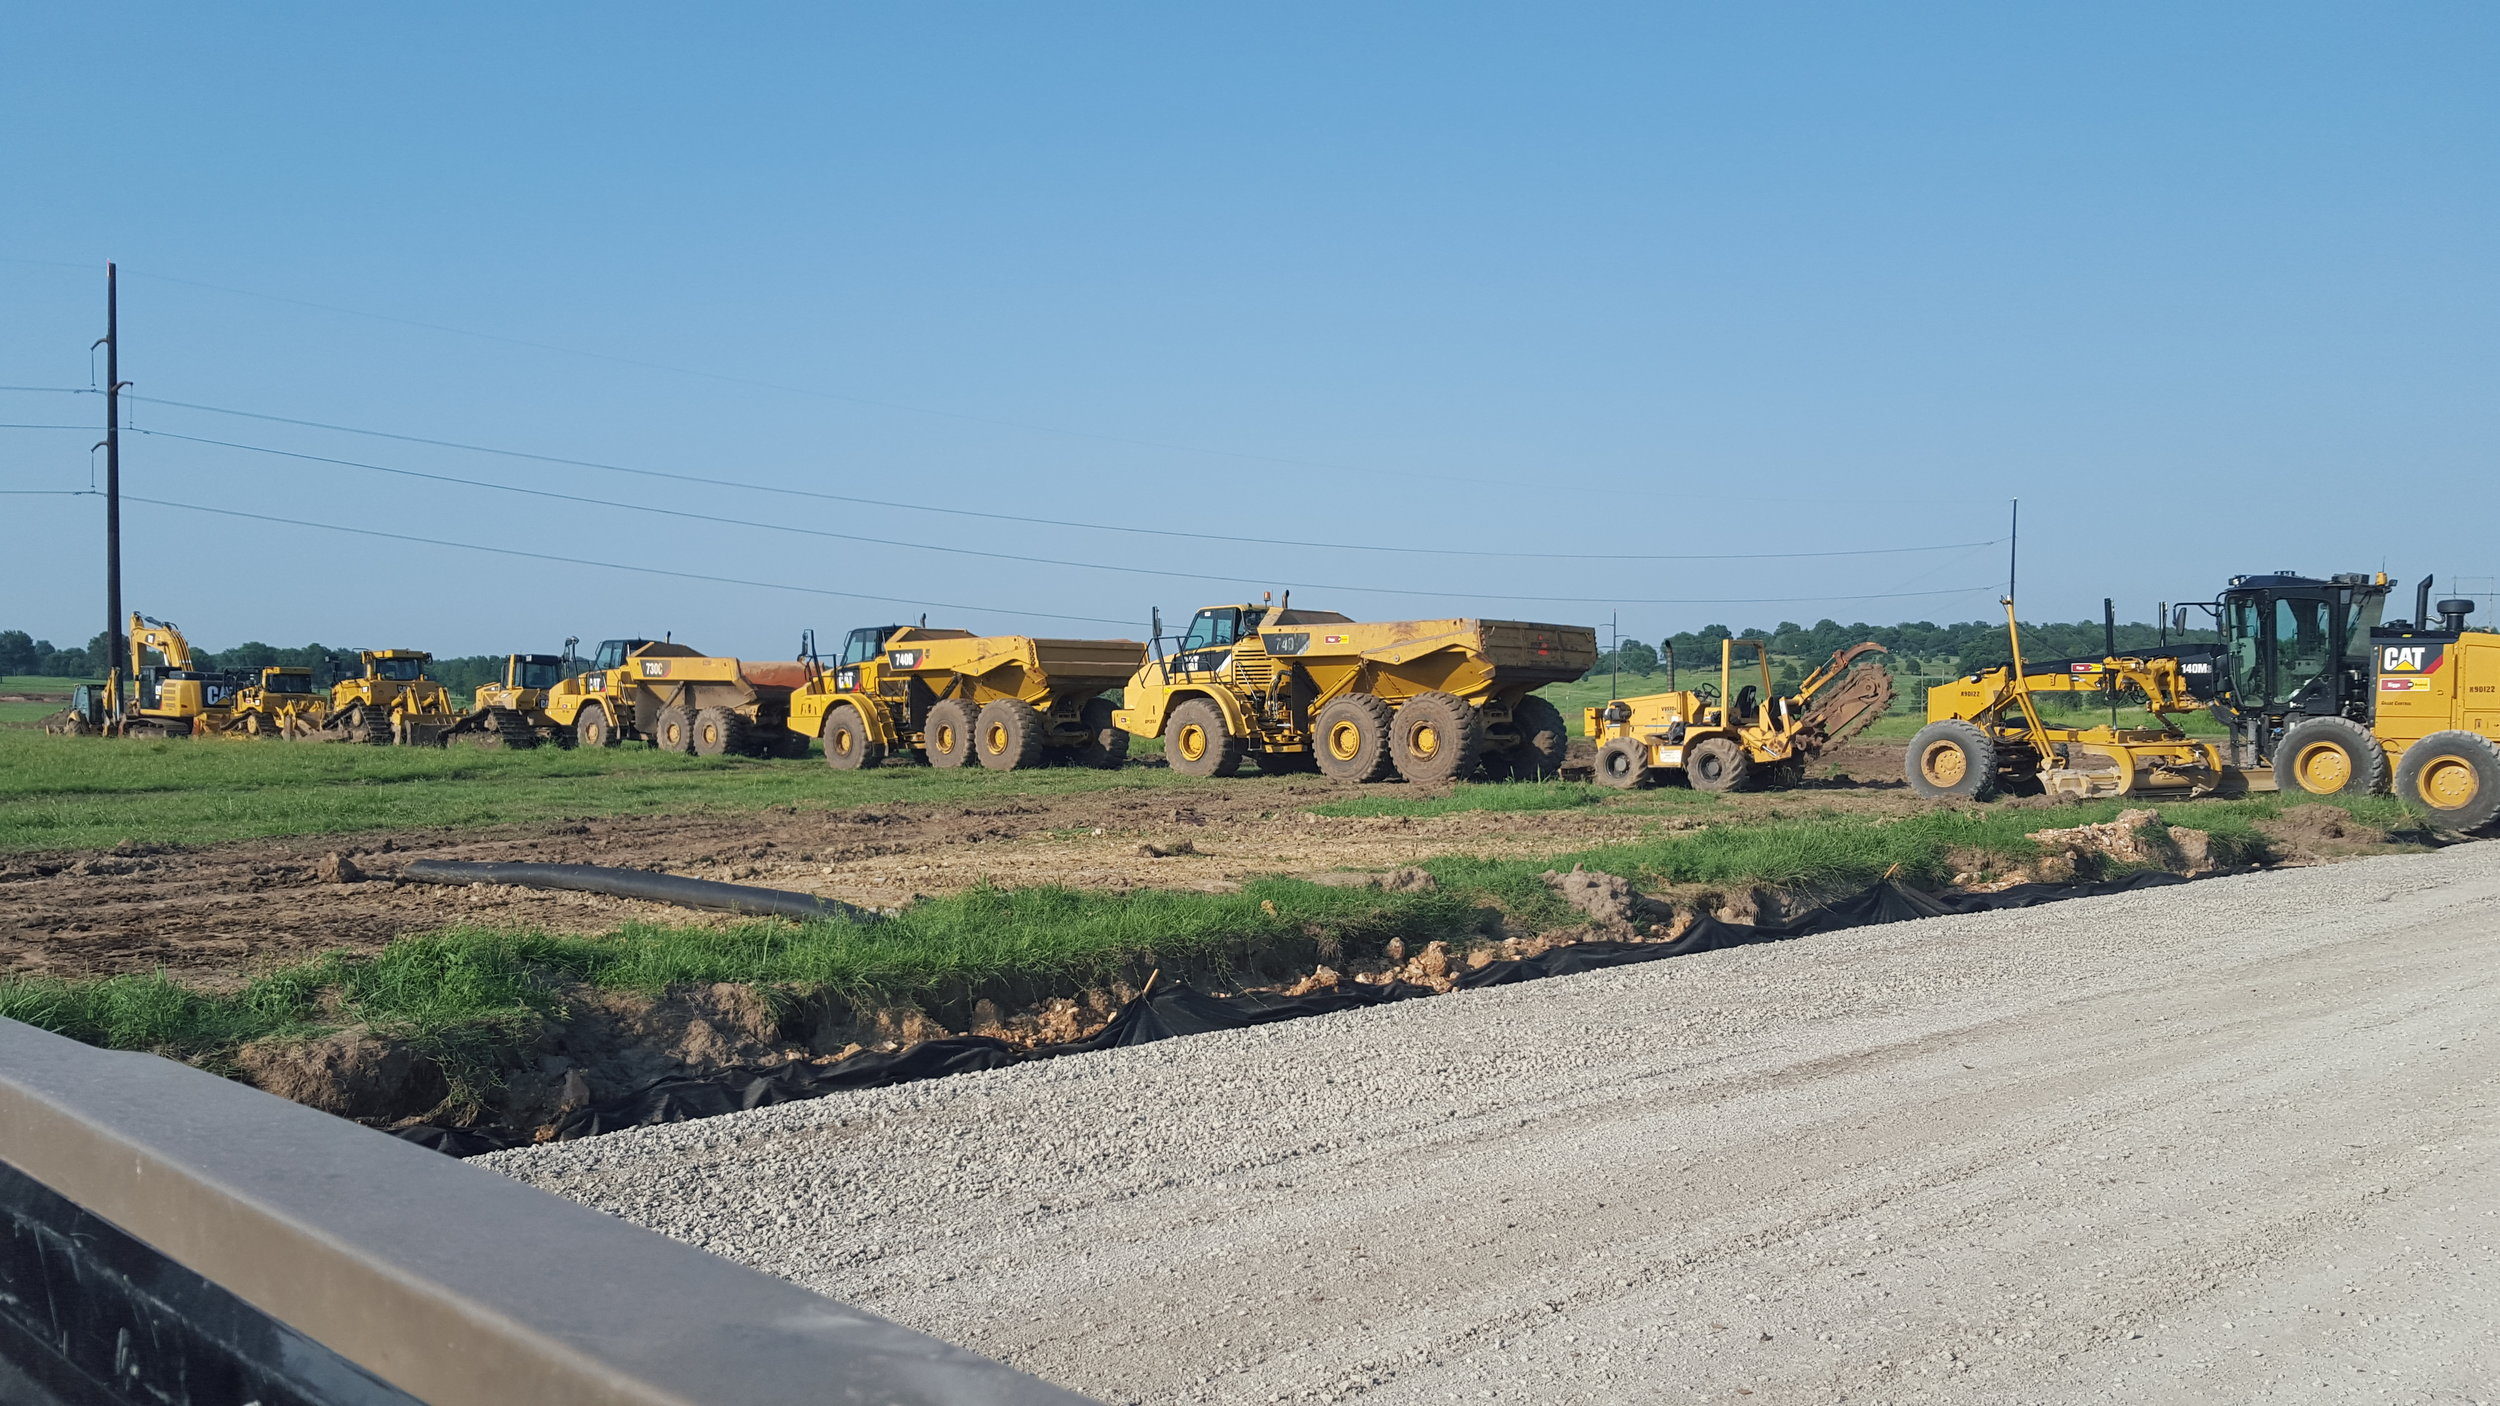 Some Of Our Heavy Construction Equipment